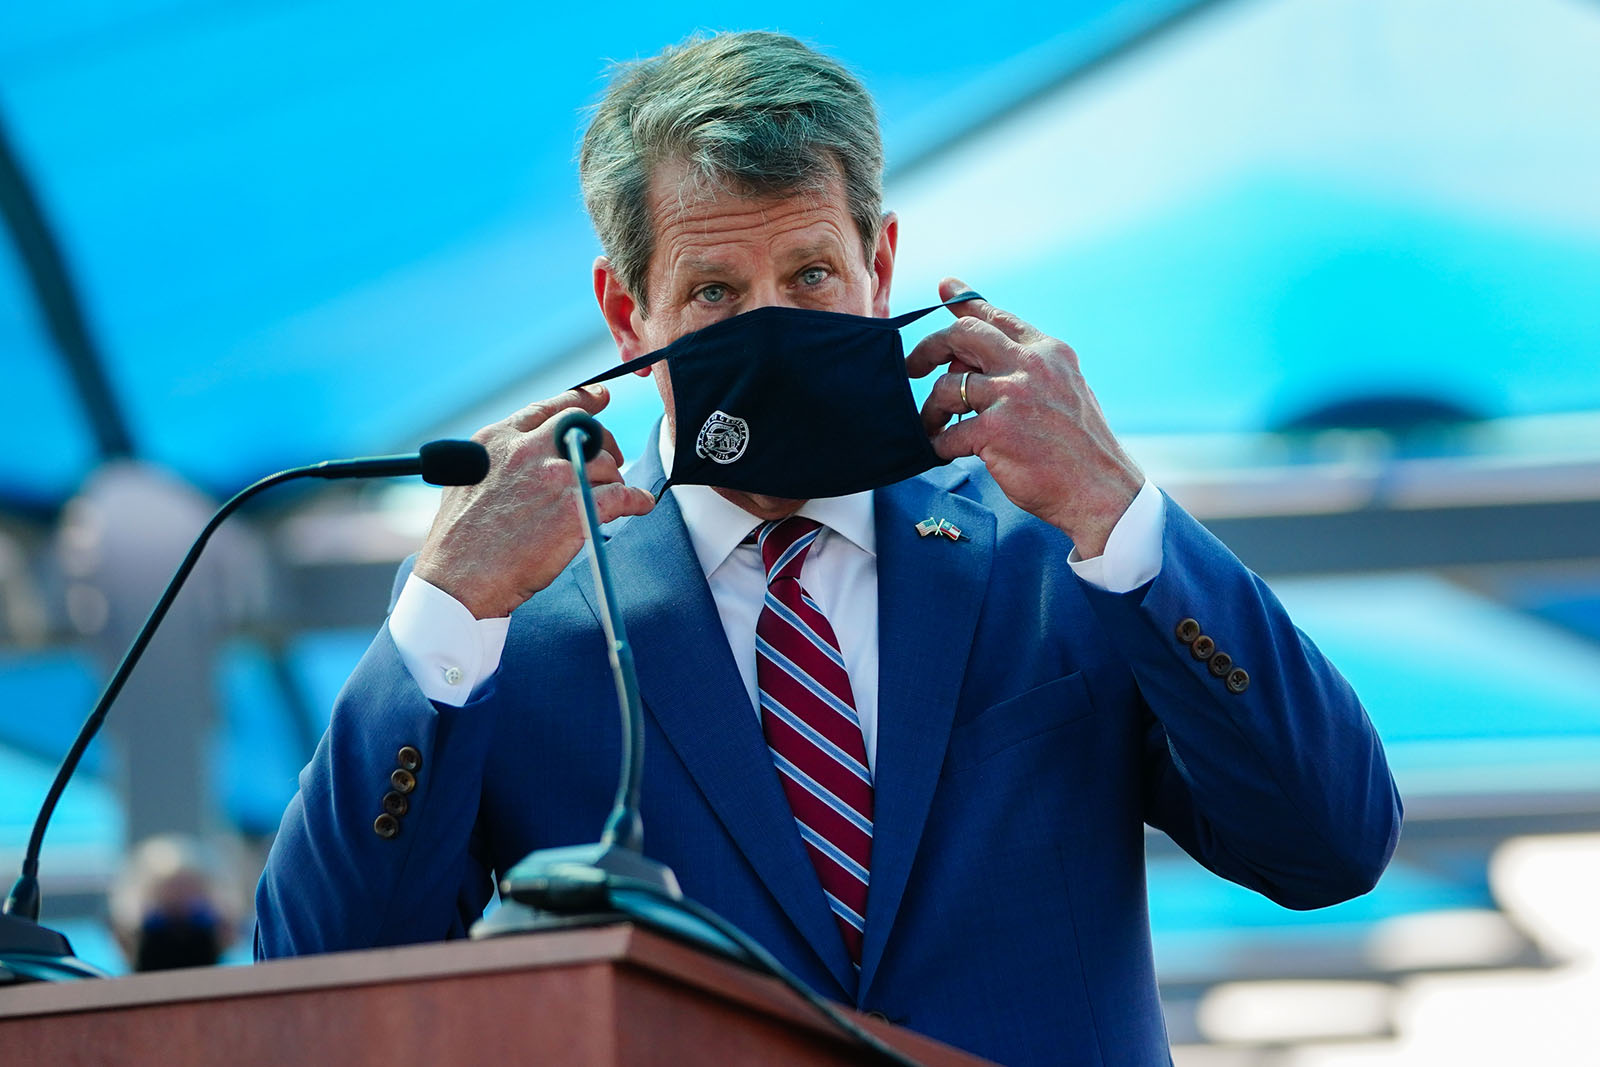 Georgia Governor Brian Kemp puts on a mask after speaking at a press conference announcing statewide expanded COVID testing on August 10, in Atlanta.